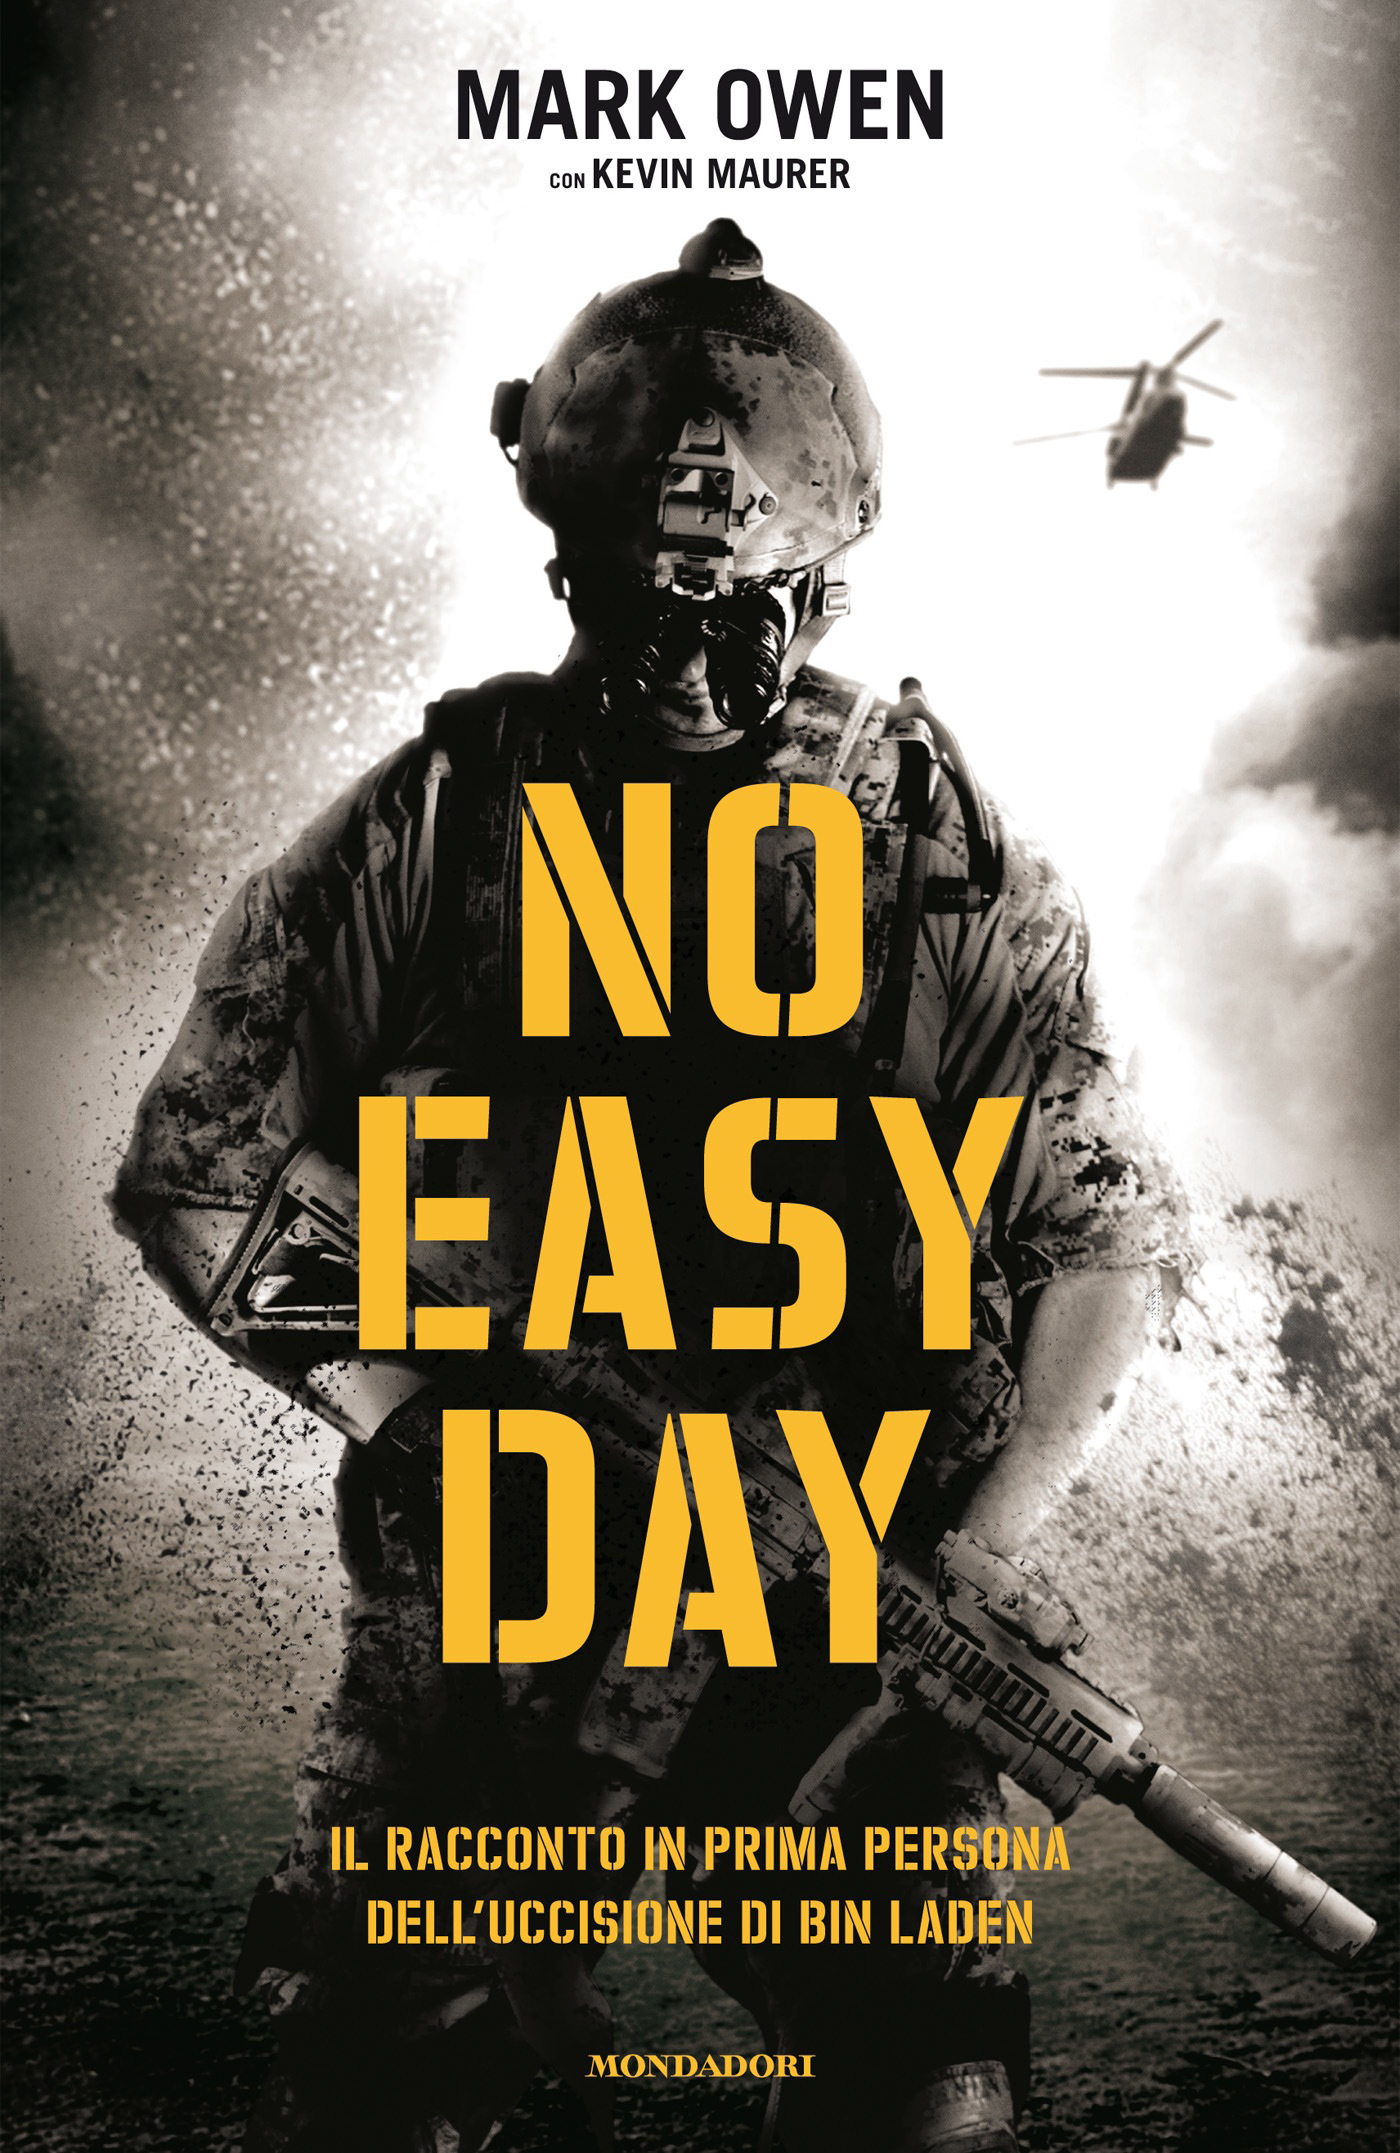 No easy day: Il racconto in prima persona dell'uccisione di bin Laden